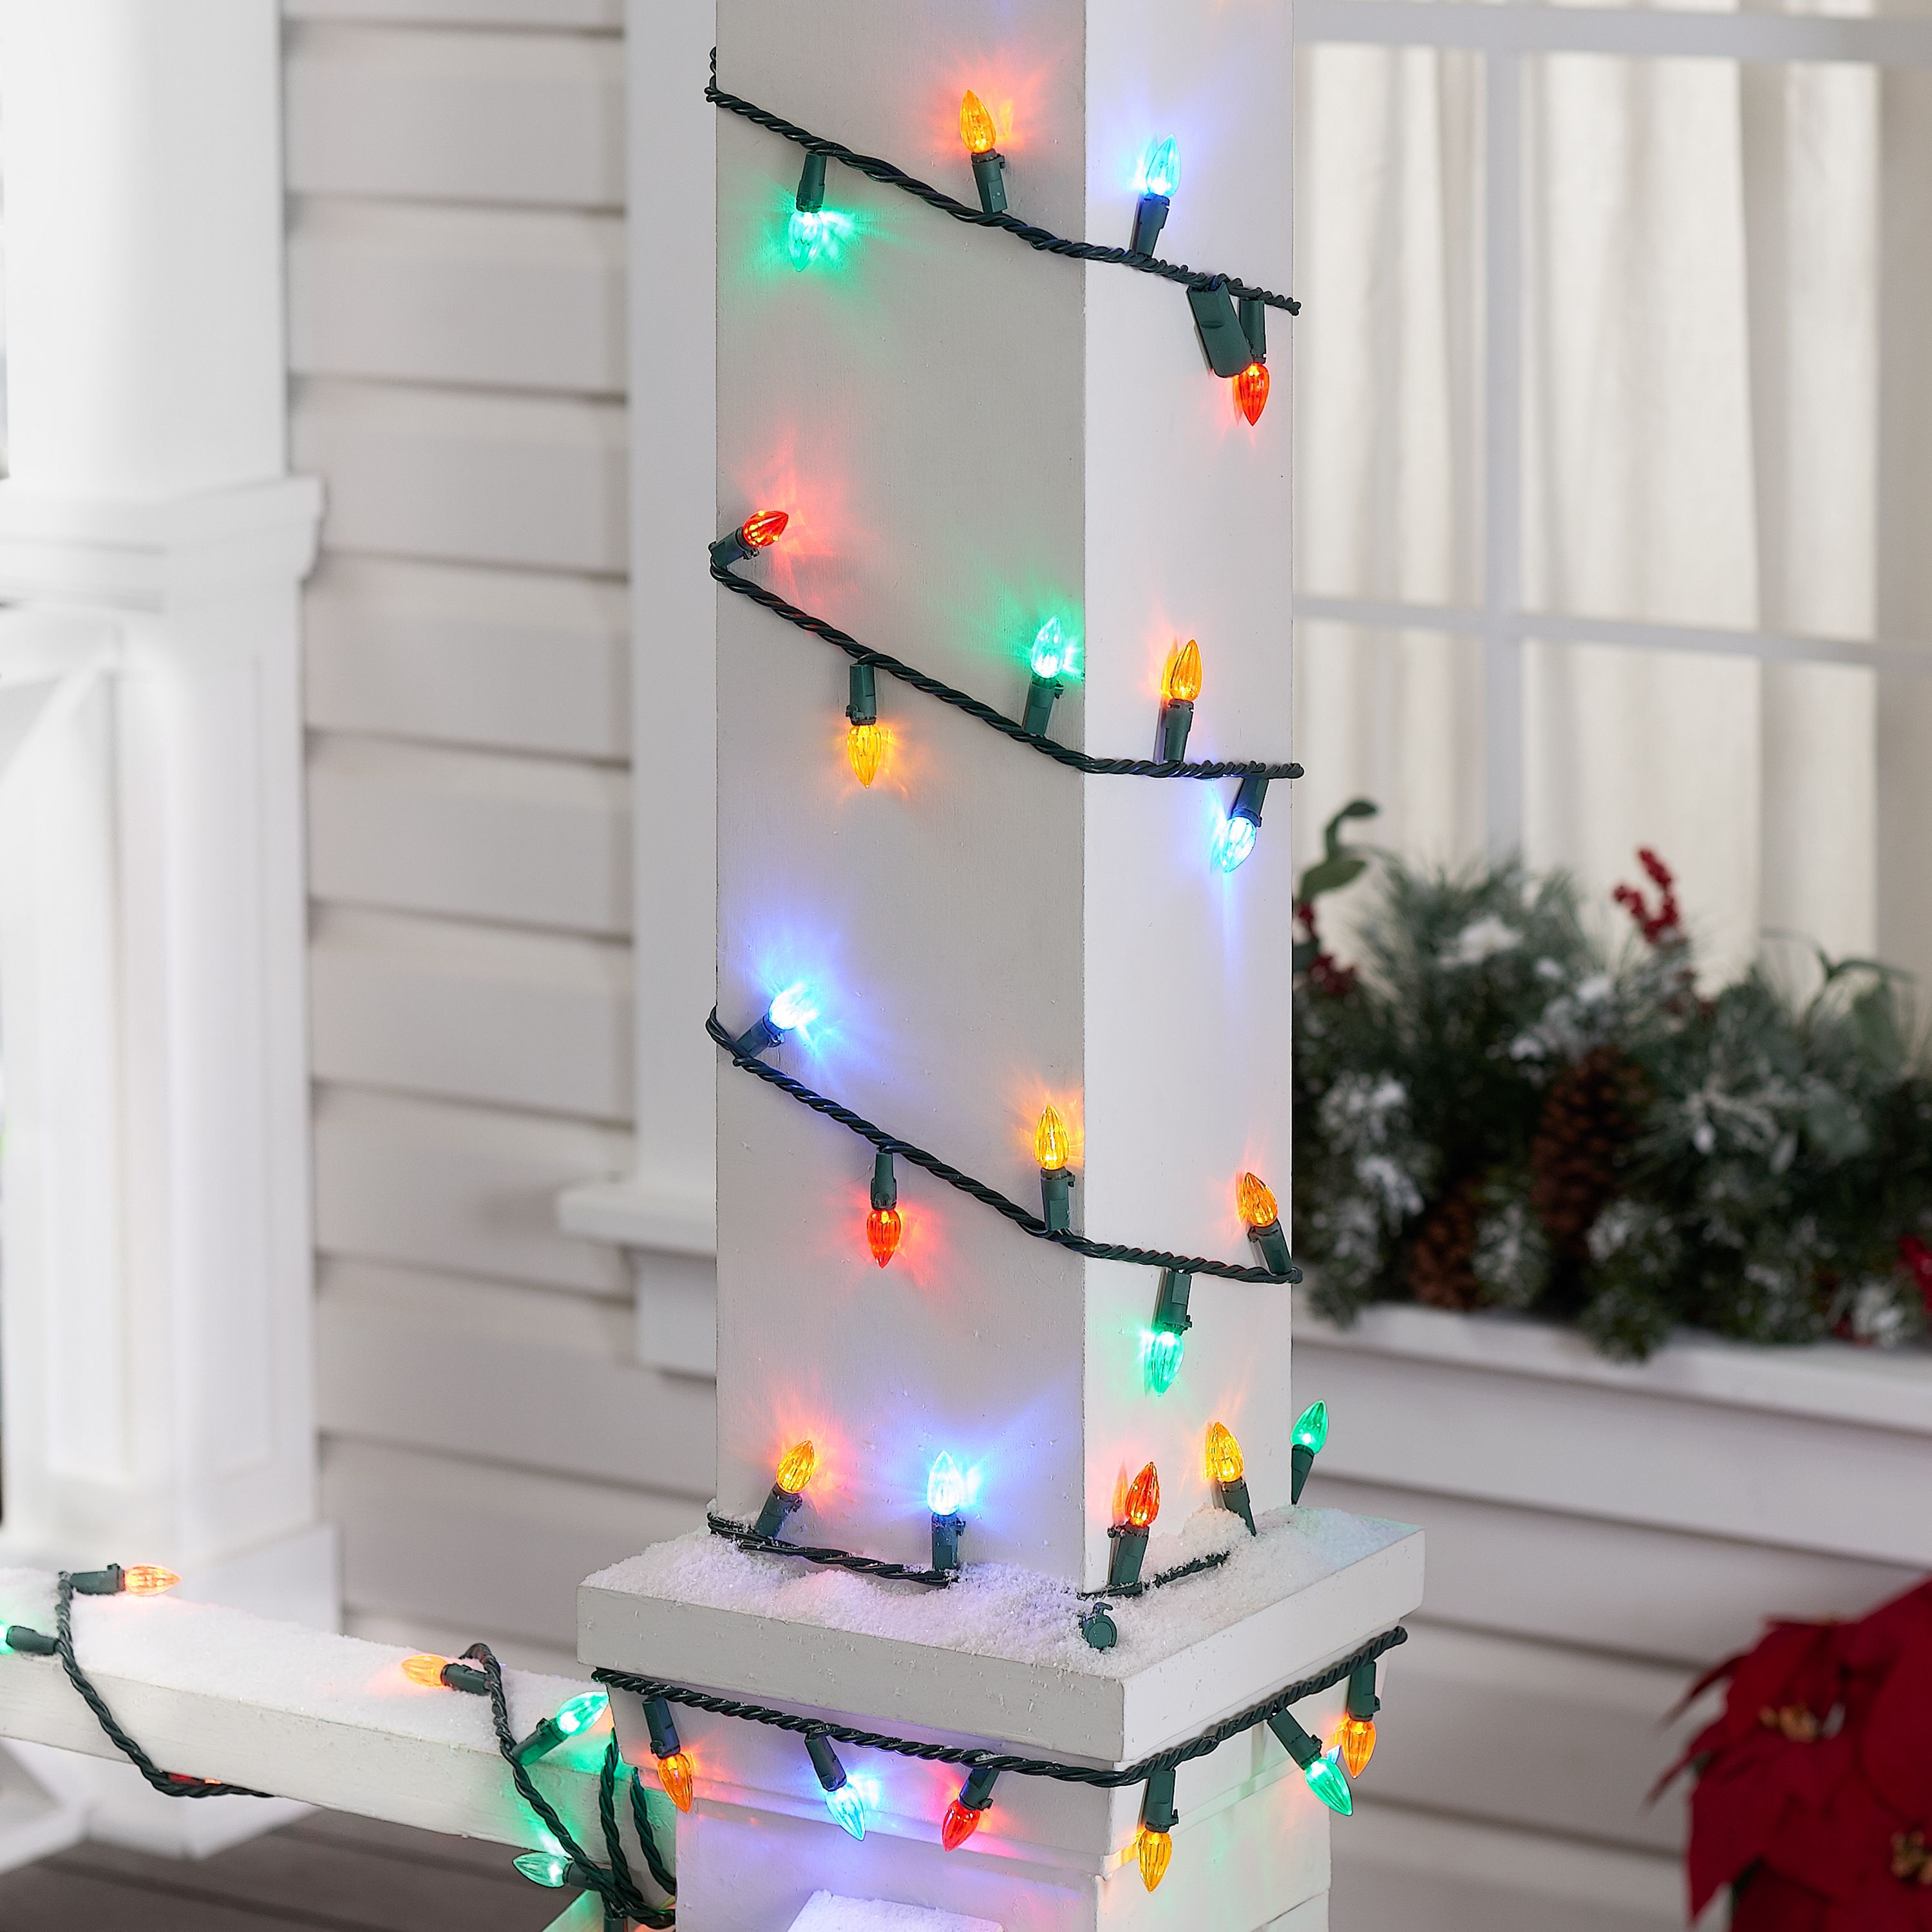 225 Count Multicolor LED String